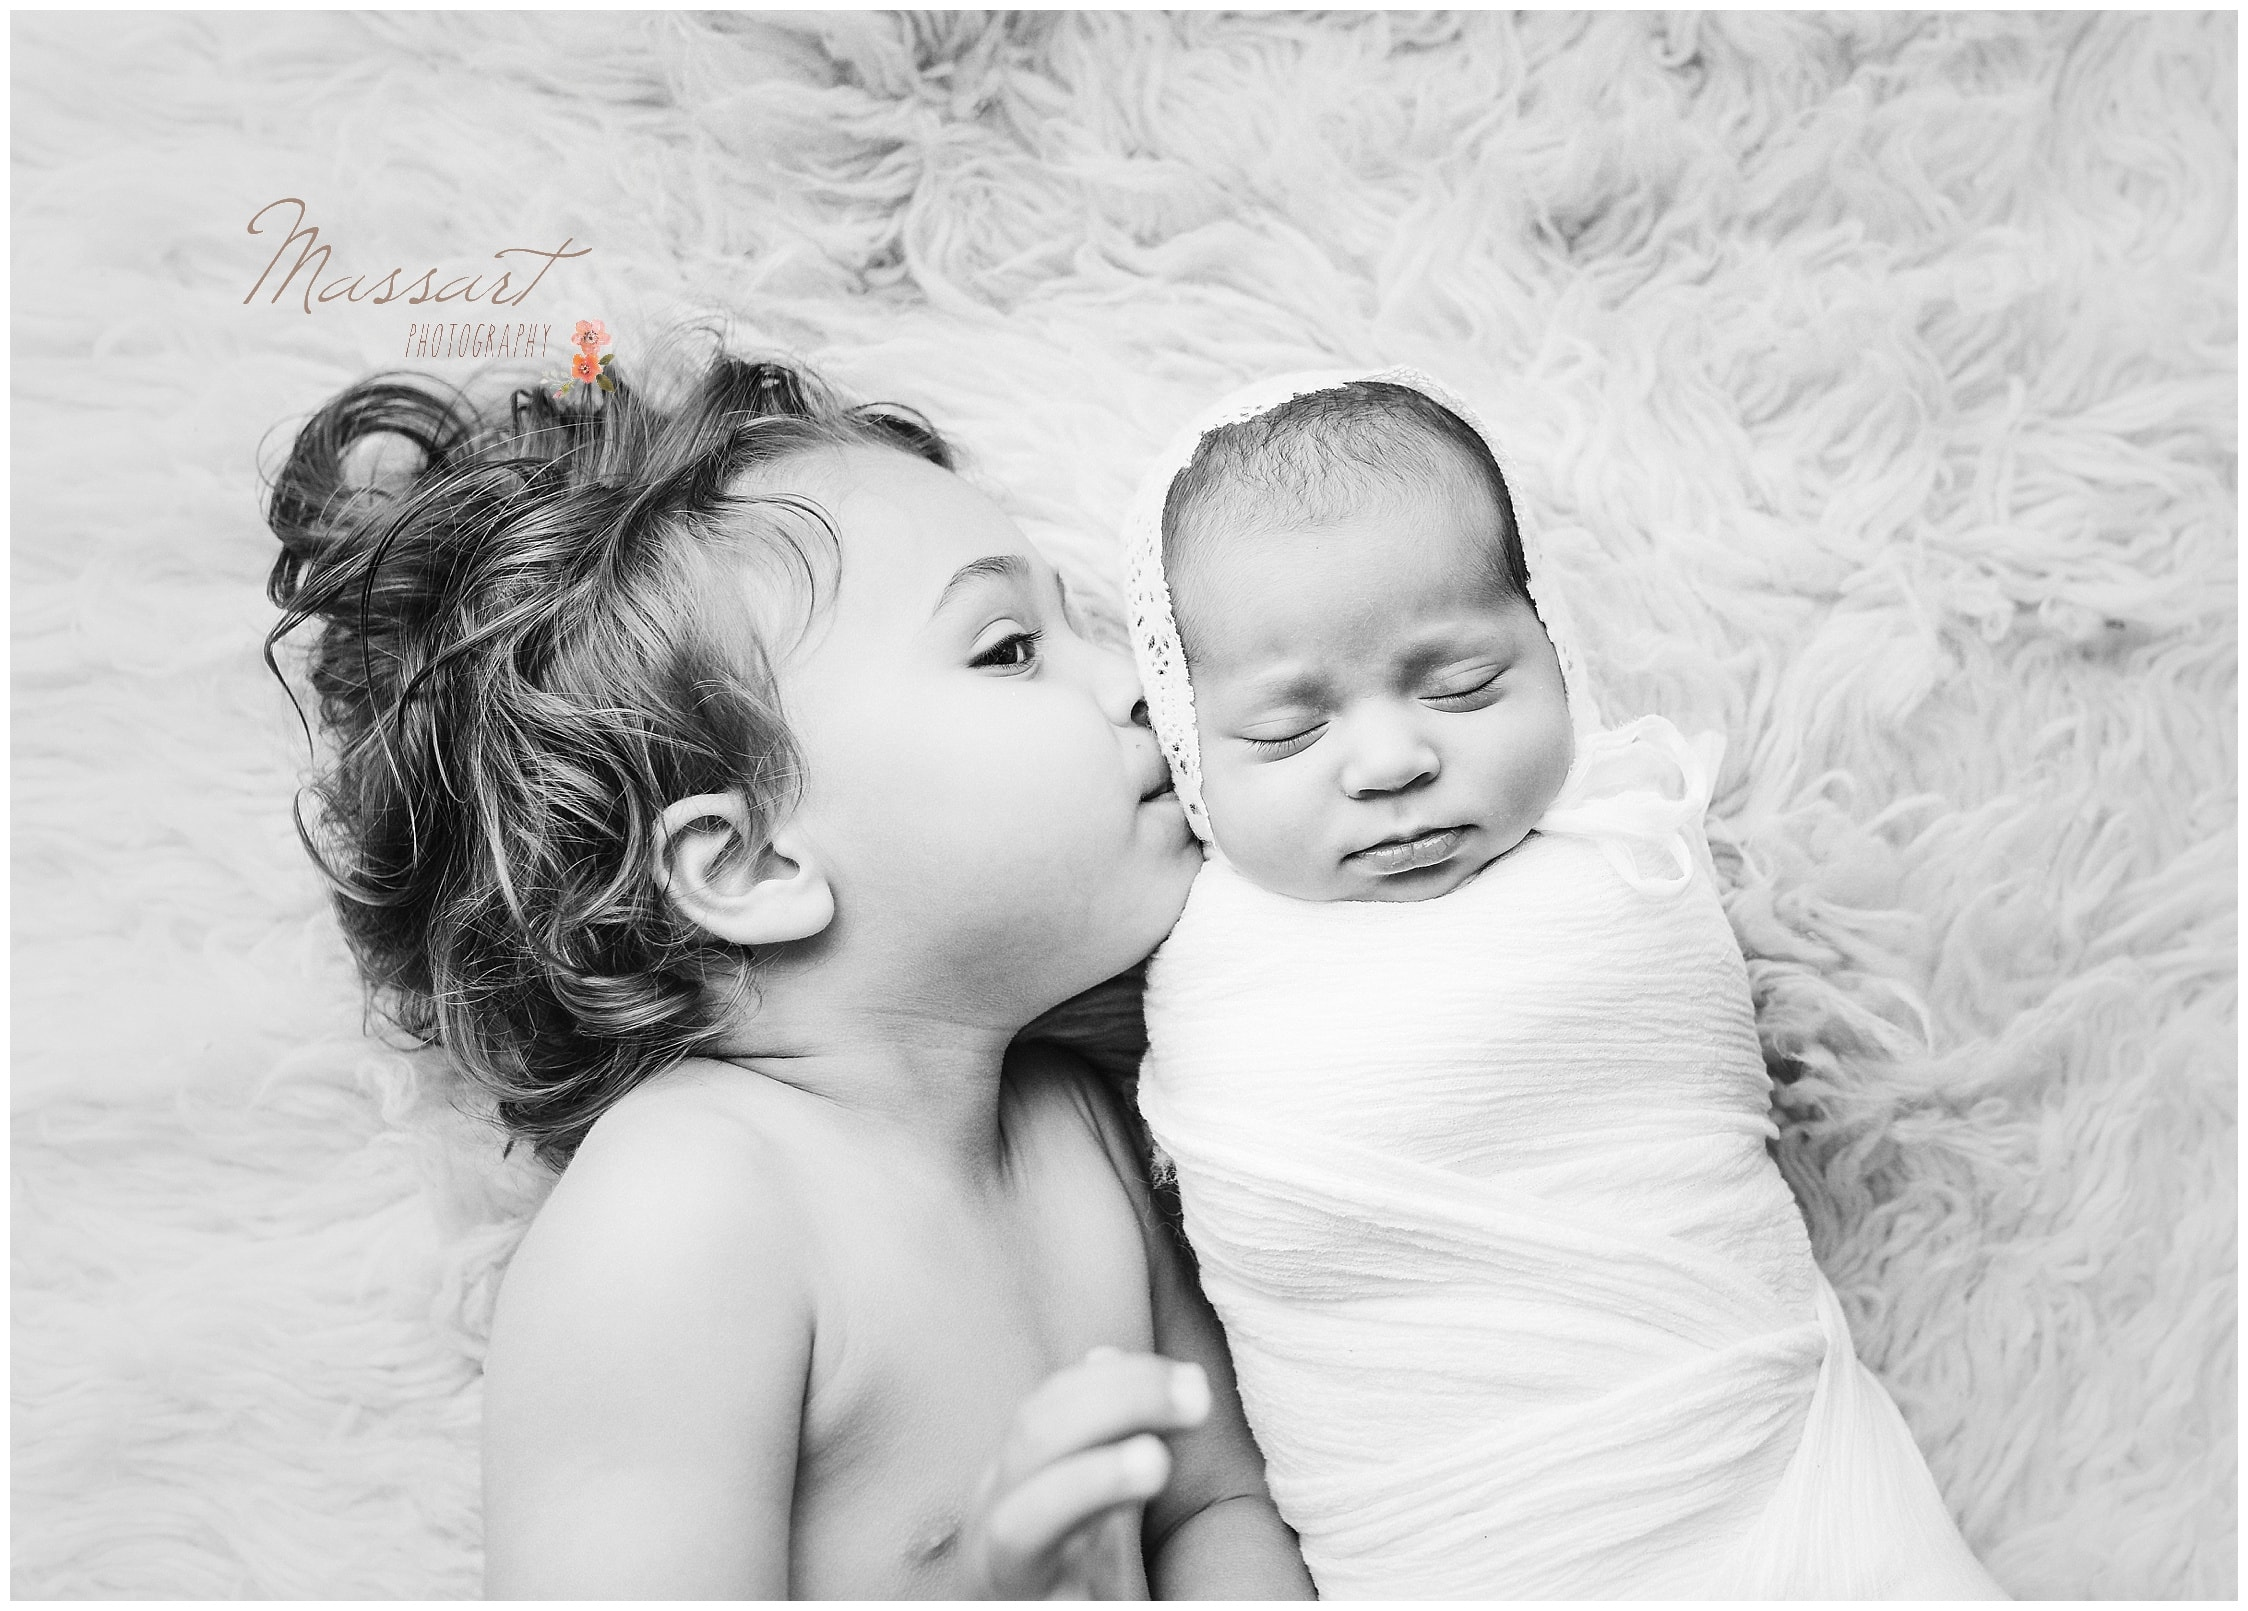 Big brother kisses his newborn baby sister photographed by Massart Photography of Warwick, Rhode Island